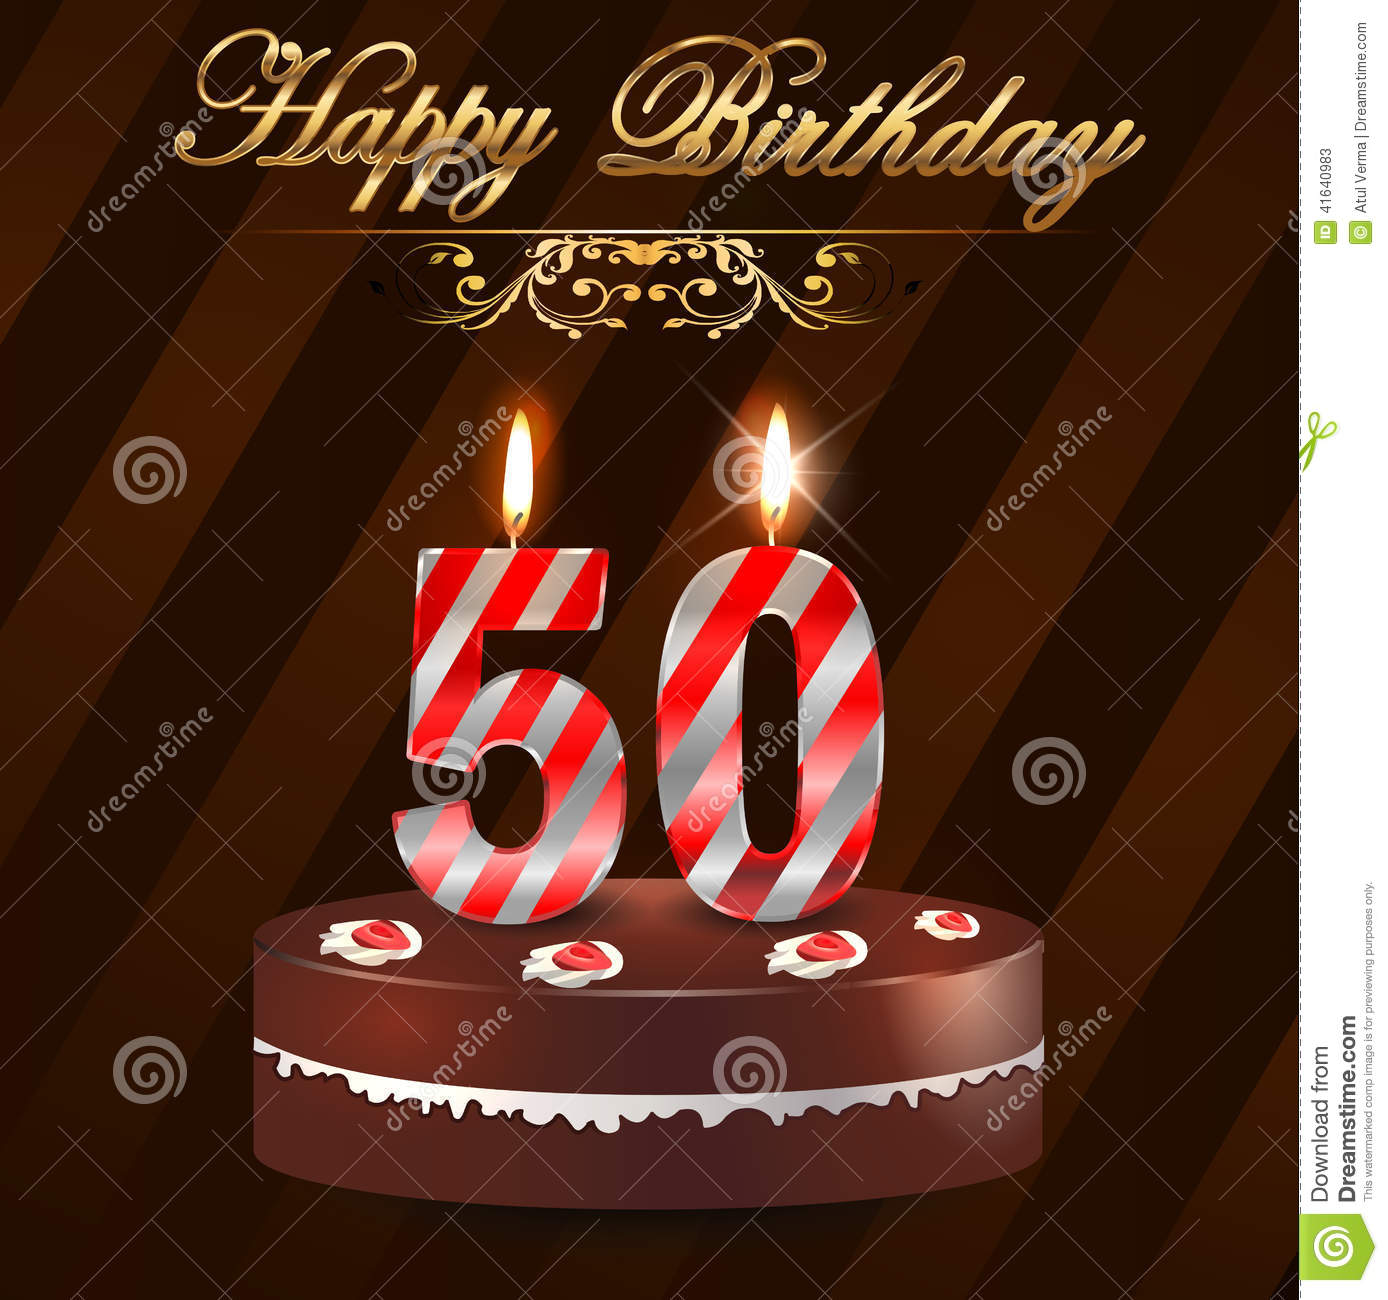 50 Year Happy Birthday Card With Cake And Candles 50th Birthday